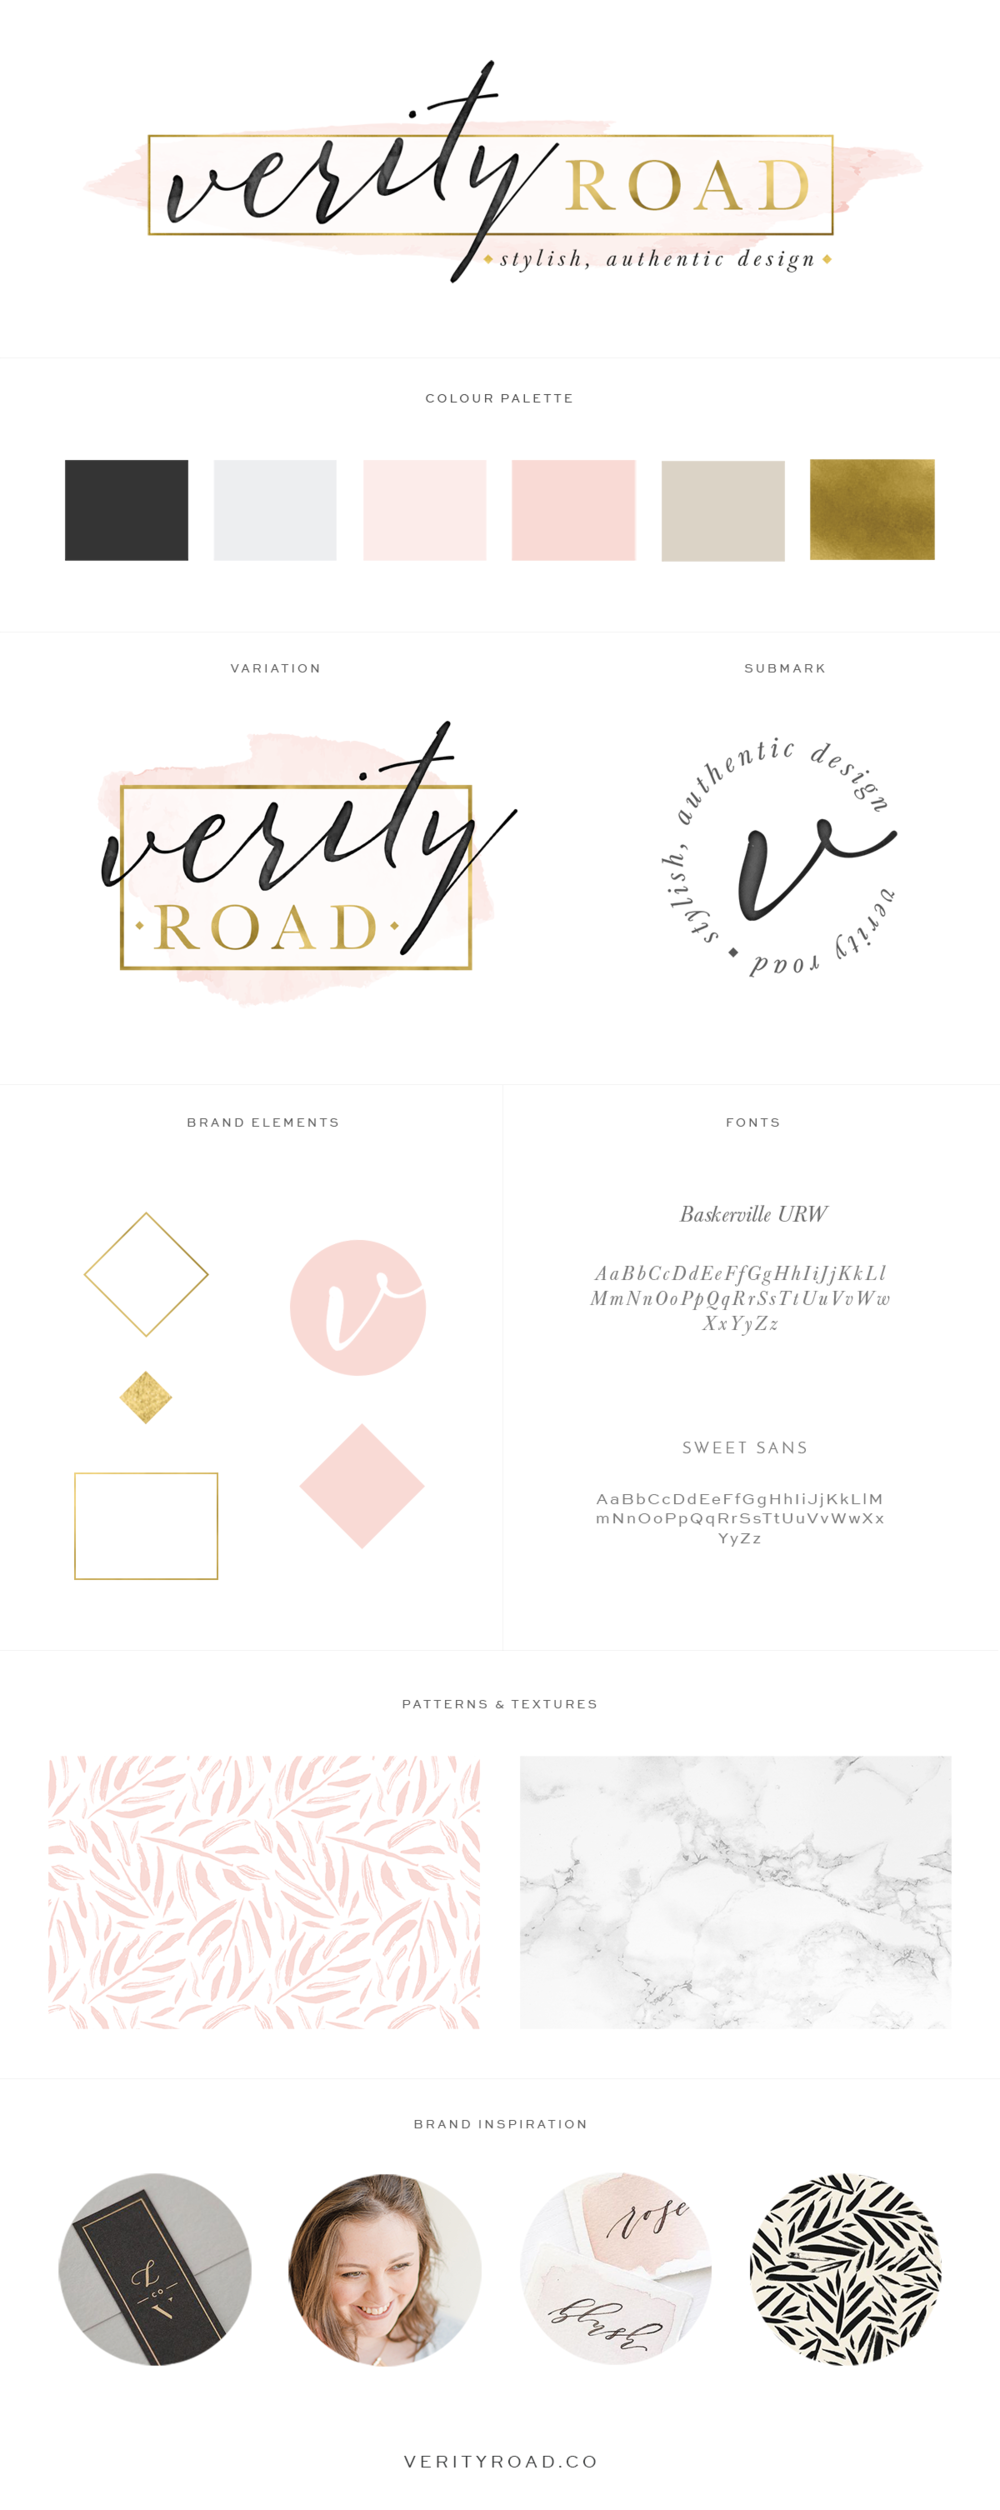 Brand board for verity road, luxury branding, brand styling and web design for female entrepreneurs. Feminine branding, brand style guide, logo design, submark, brand elements, calligraphy, sans serif, black, latte, blush, pink, gold, color palette, pattern, marble, texture, typography, script font, business owner, blogger, feminine business. See more for mood board, social media branding, print materials and website design.